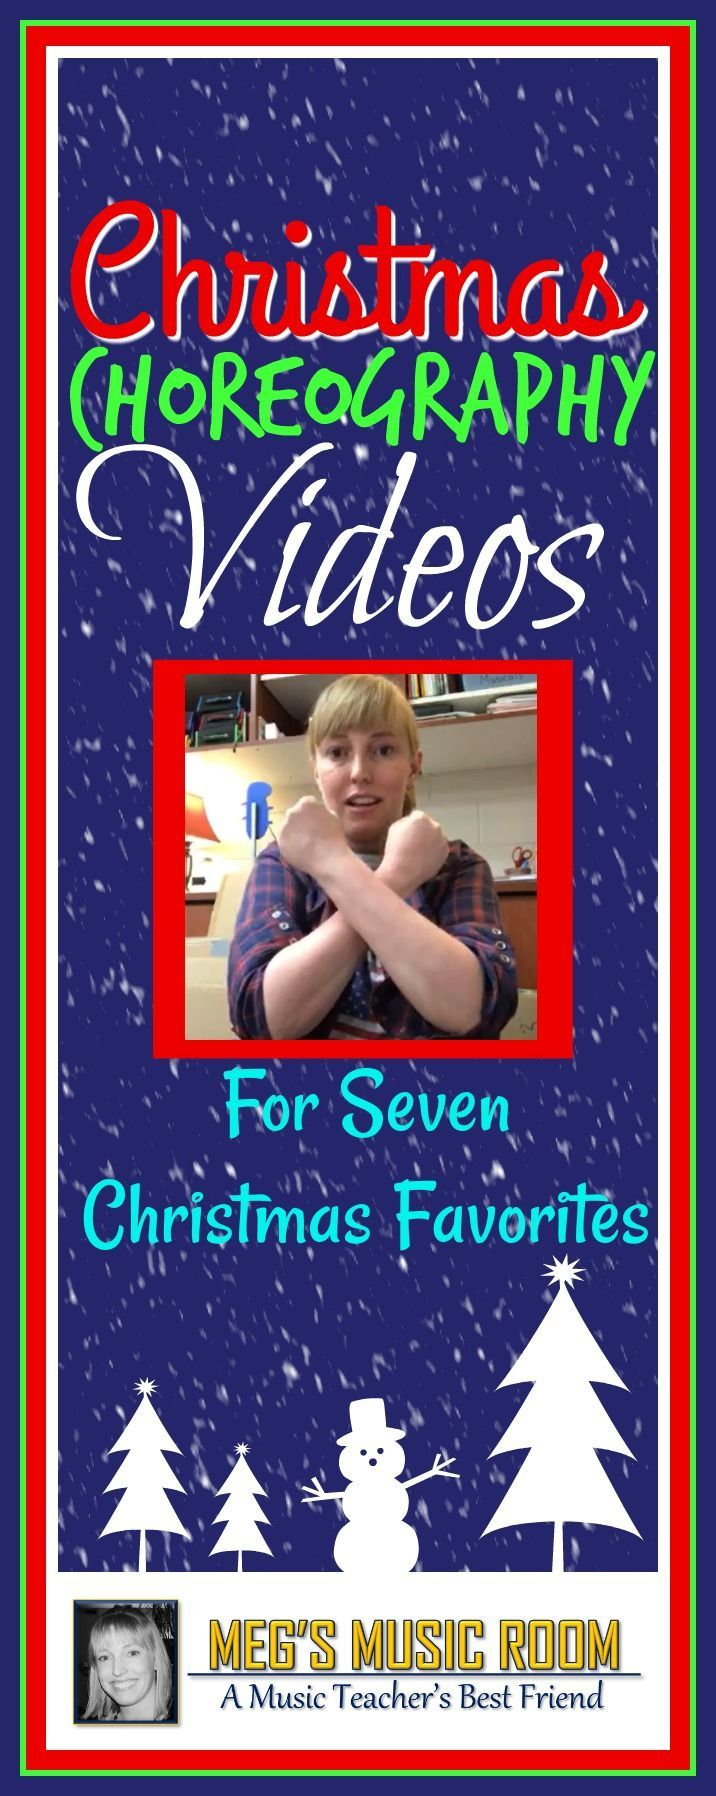 Christmas Choreography for Elementary Music Class - 7 Christmas Songs - Jingle Bells, Silent Night, Up on the Housetop, All I Want for Christmas Is My Two Front Teeth, Rudolph, the Red-Nosed Reindeer, Feliz Navidad, We Wish You a Merry Christmas. Easy dance moves that are perfect for caroling, stage performances, and classroom fun. #christmas #christmasmusic #music #elementarymusic #musicteacher